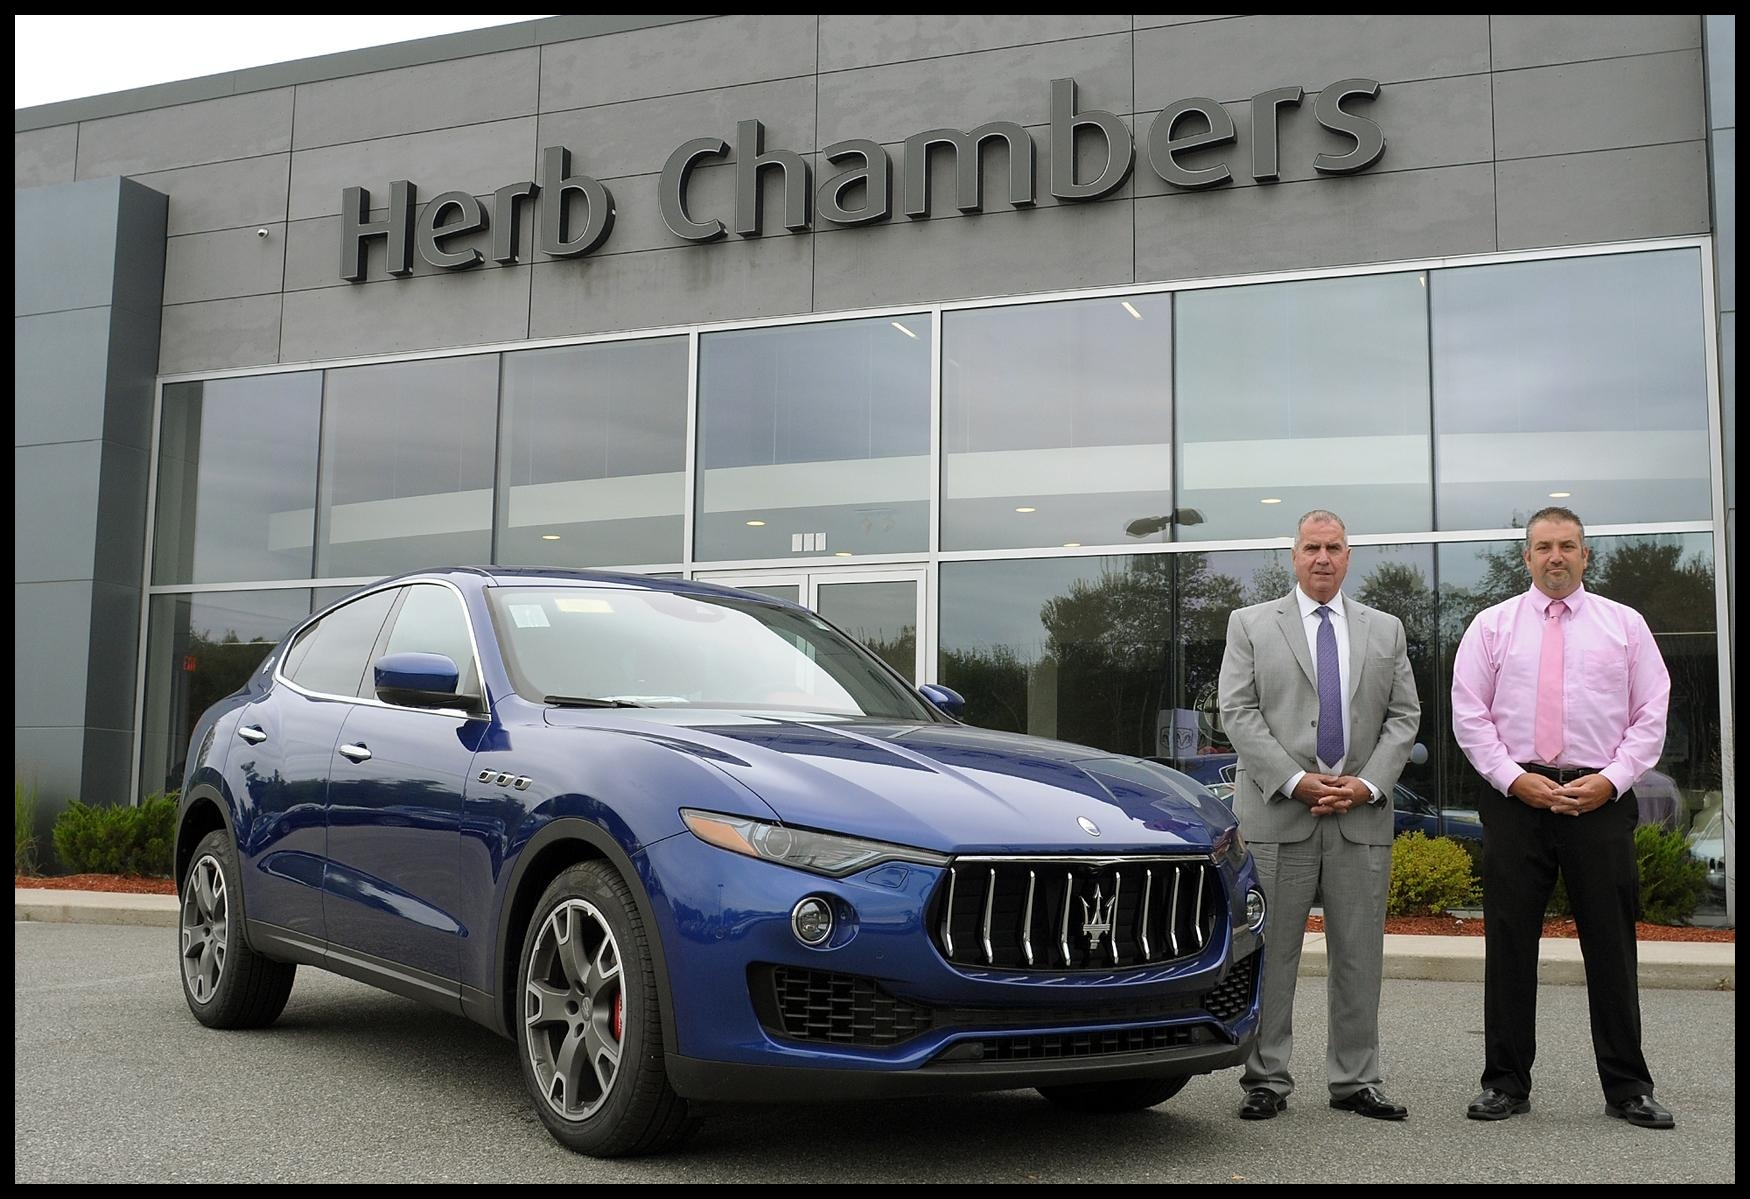 Maserati opens in Millbury If there wasn t a market we wouldn t be here News telegram Worcester MA